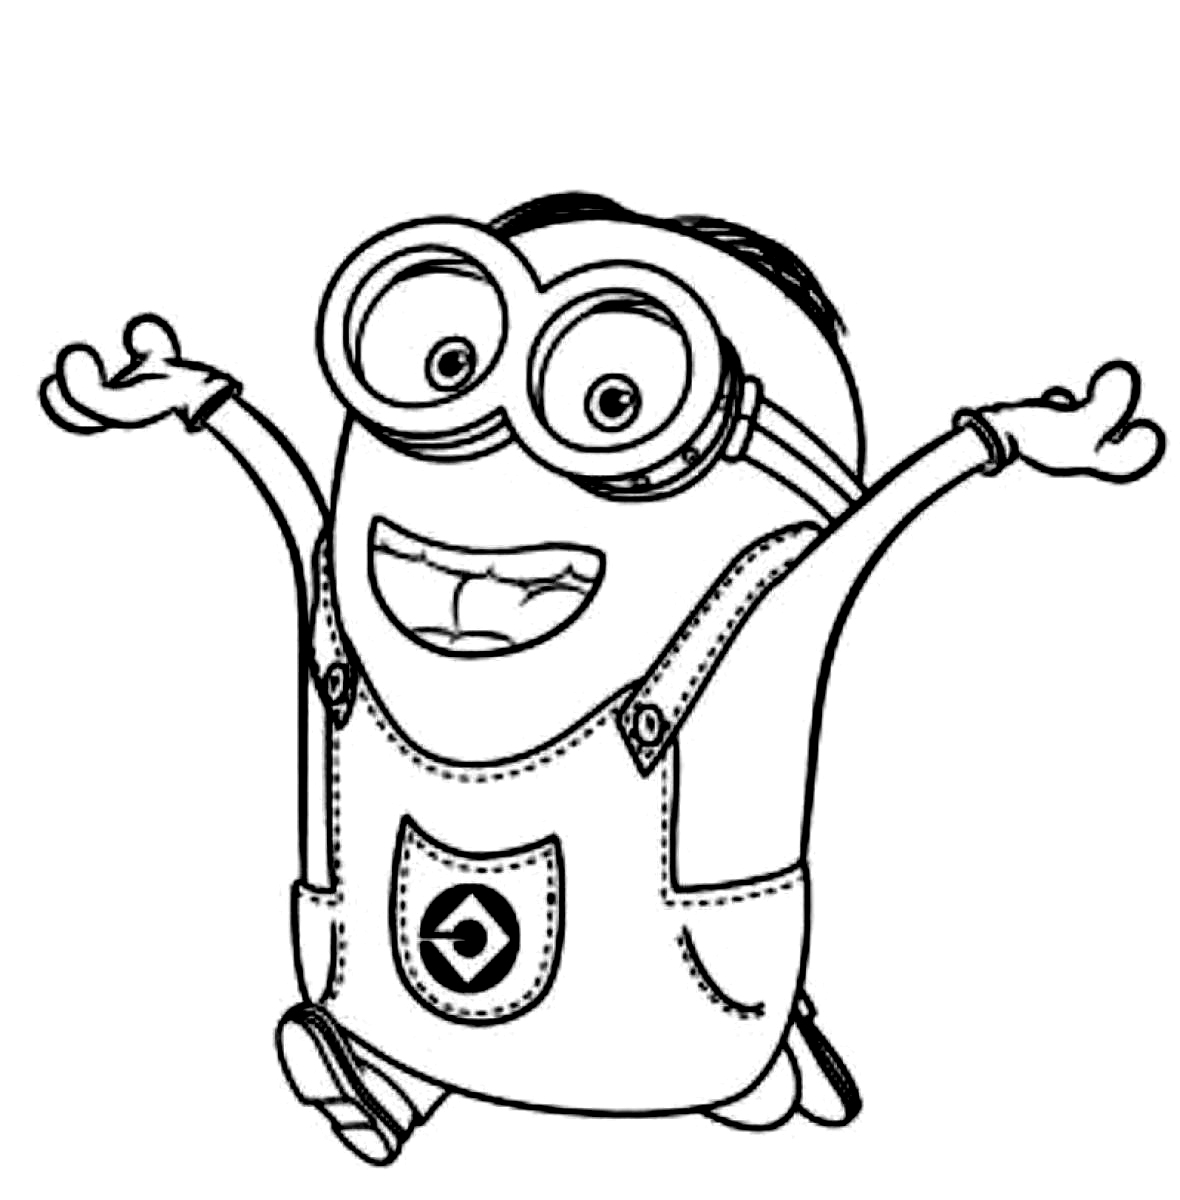 despicable me coloring pages printable - Free Cartoon Coloring Pages To Print